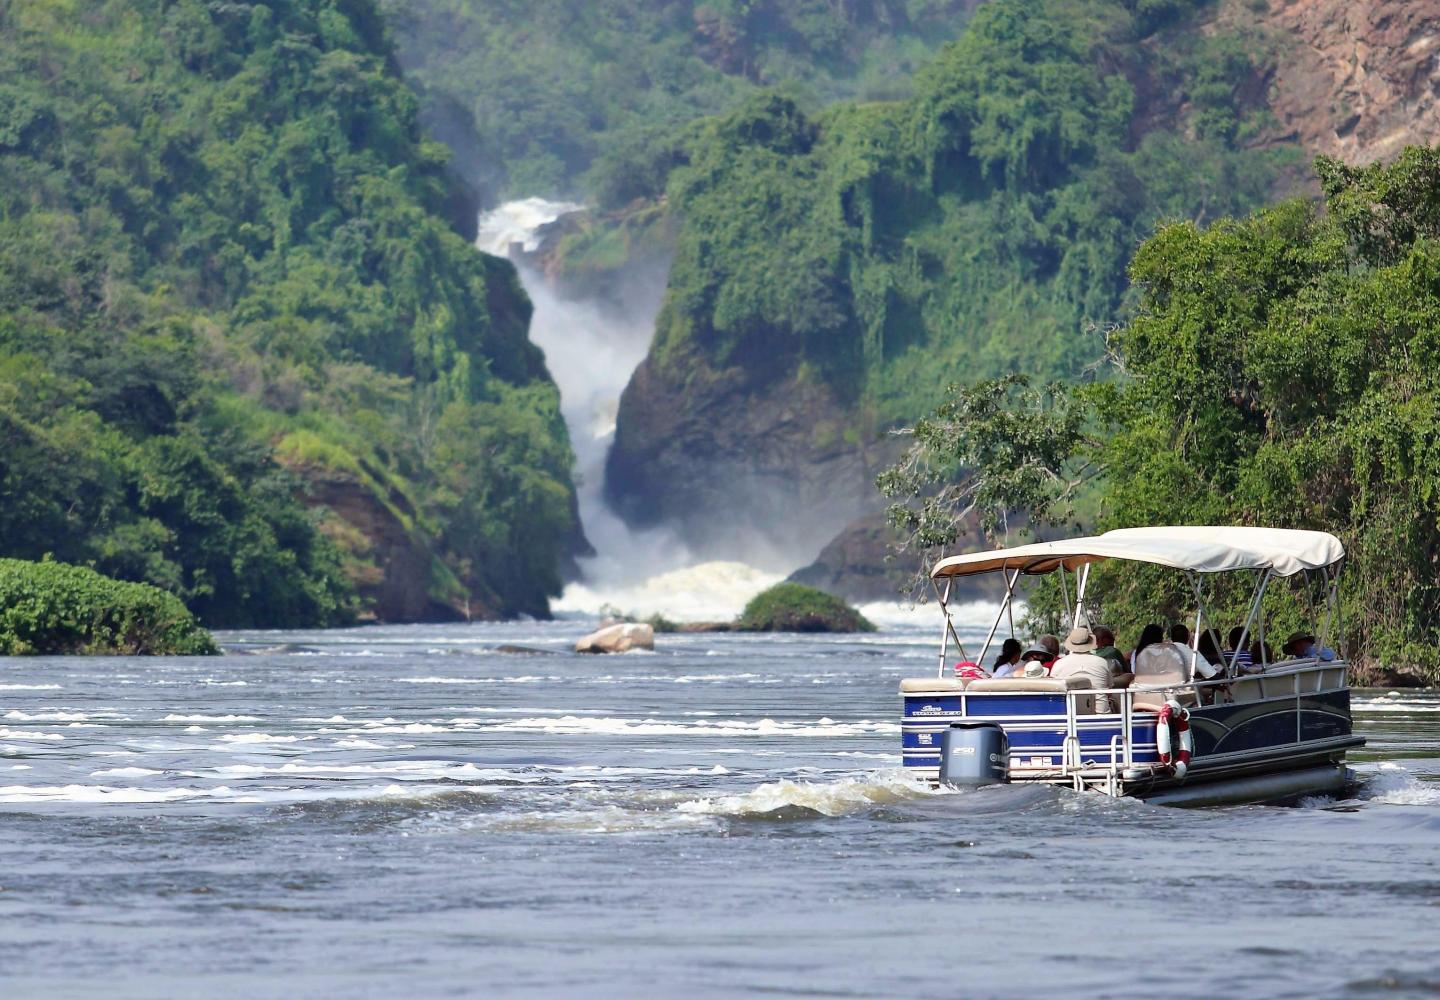 Boat trip on the Nile River up to Murchison Falls